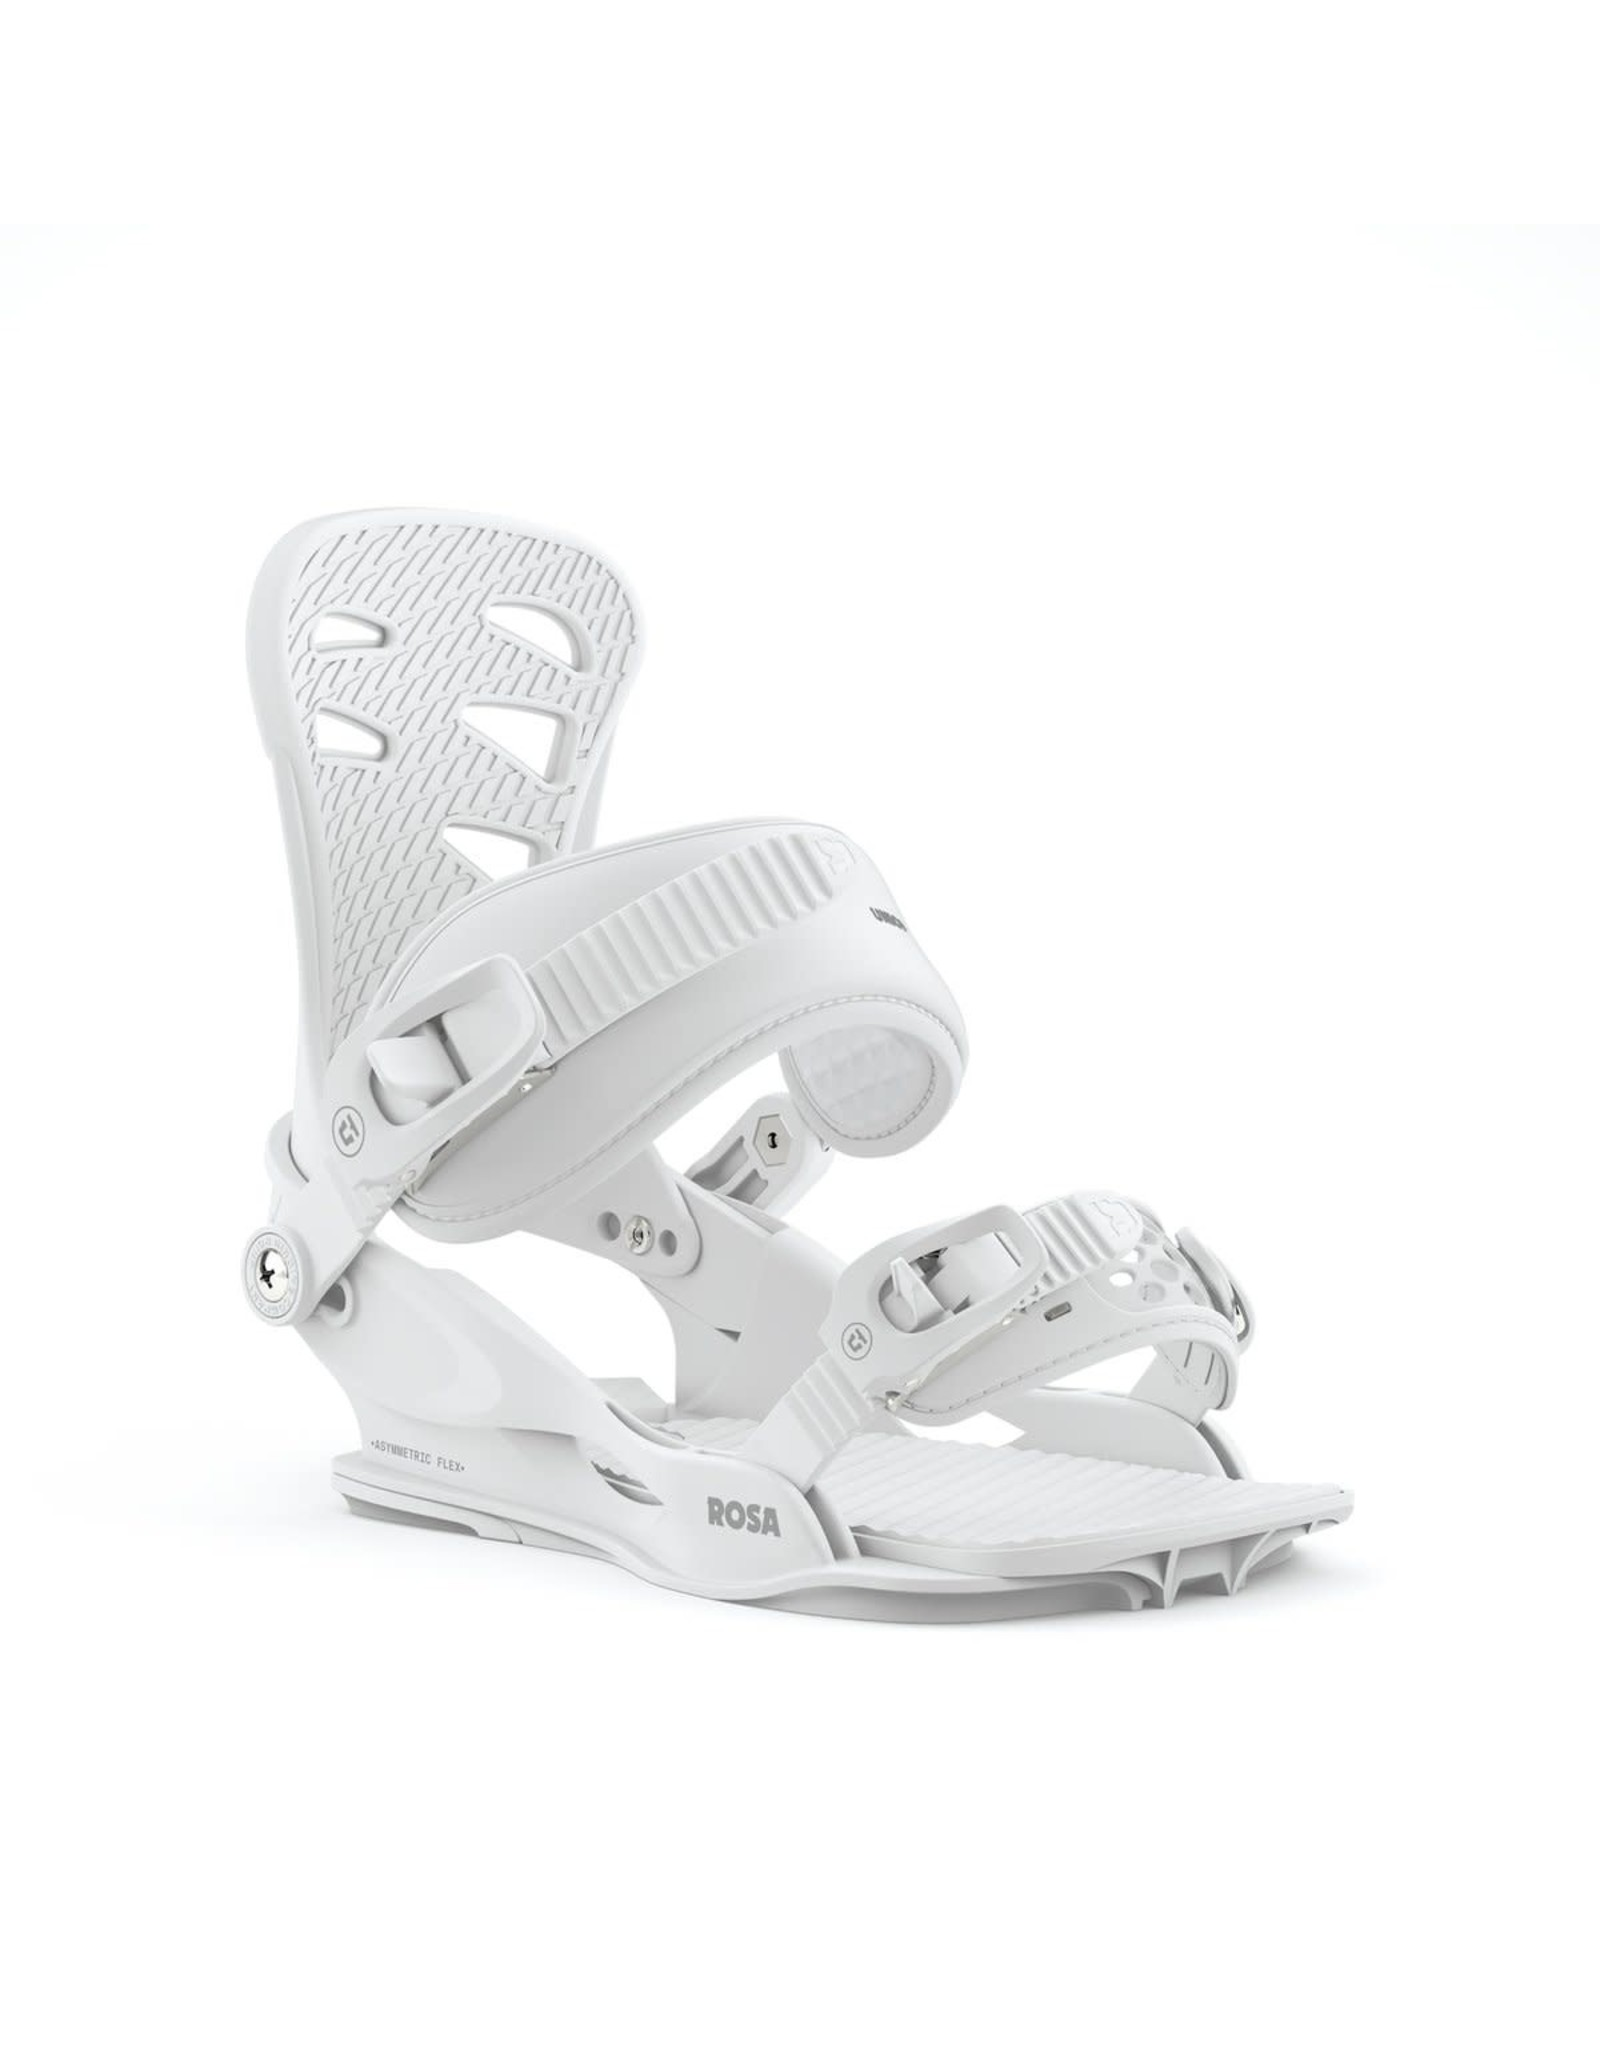 Union Union Women's Rosa Snowboard Bindings 2020